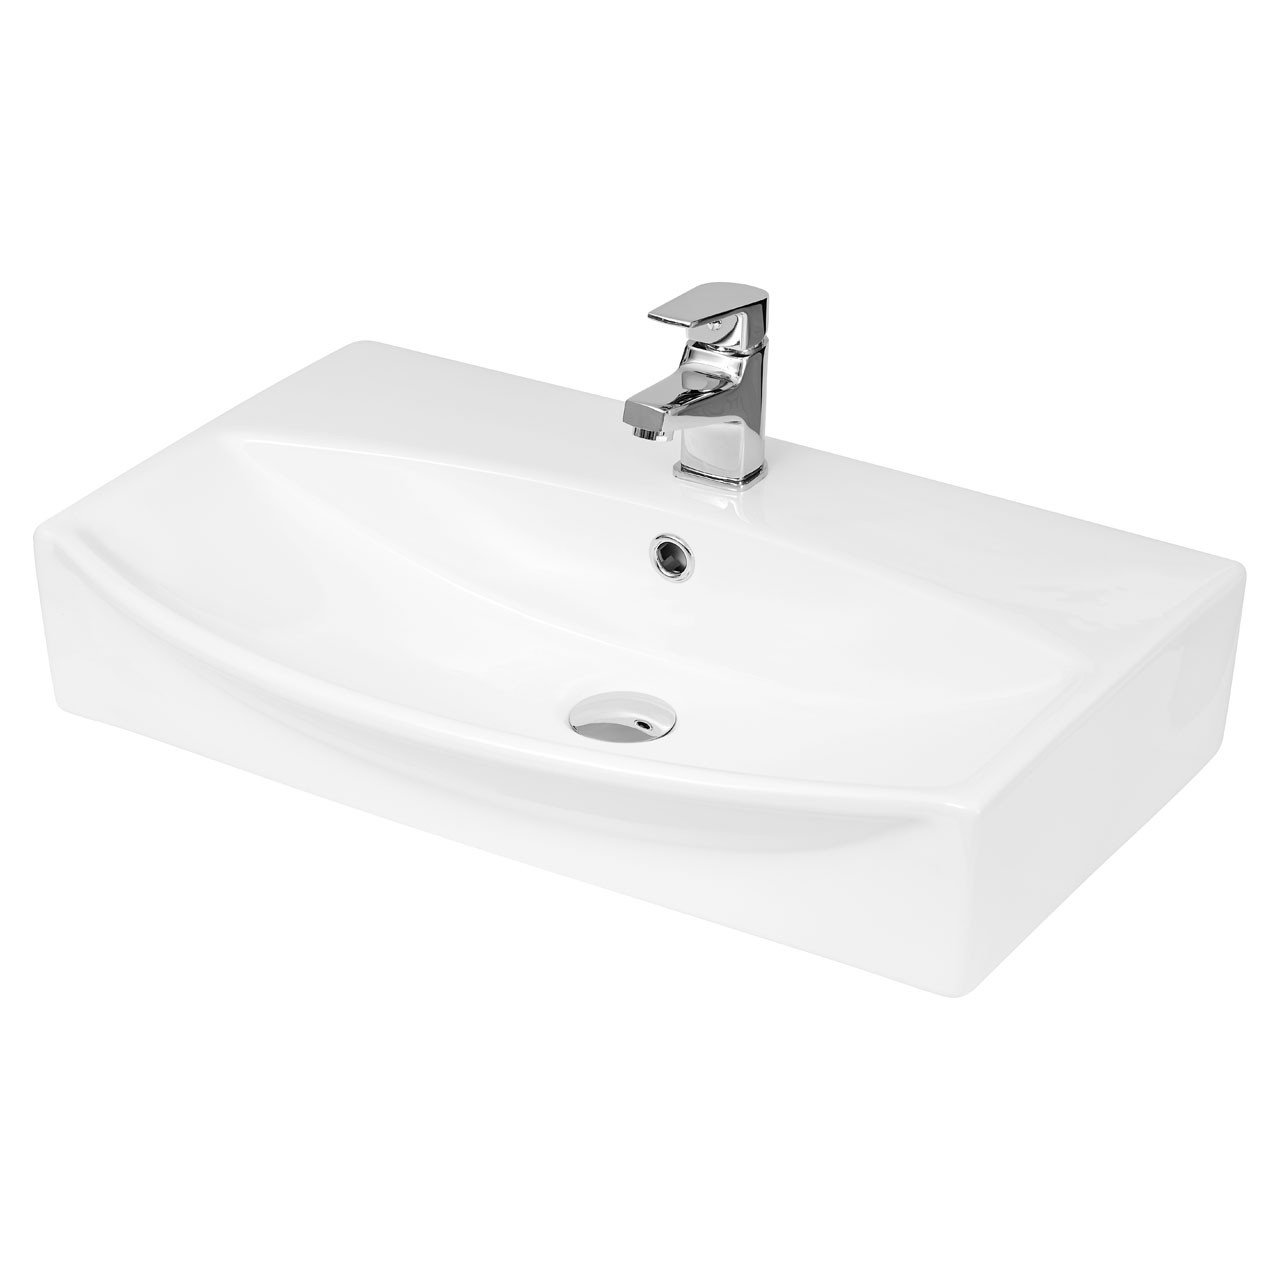 Hudson Reed 600mm x 400mm x 150mm Counter Top Basin with 1 Tap Hole - NBV165